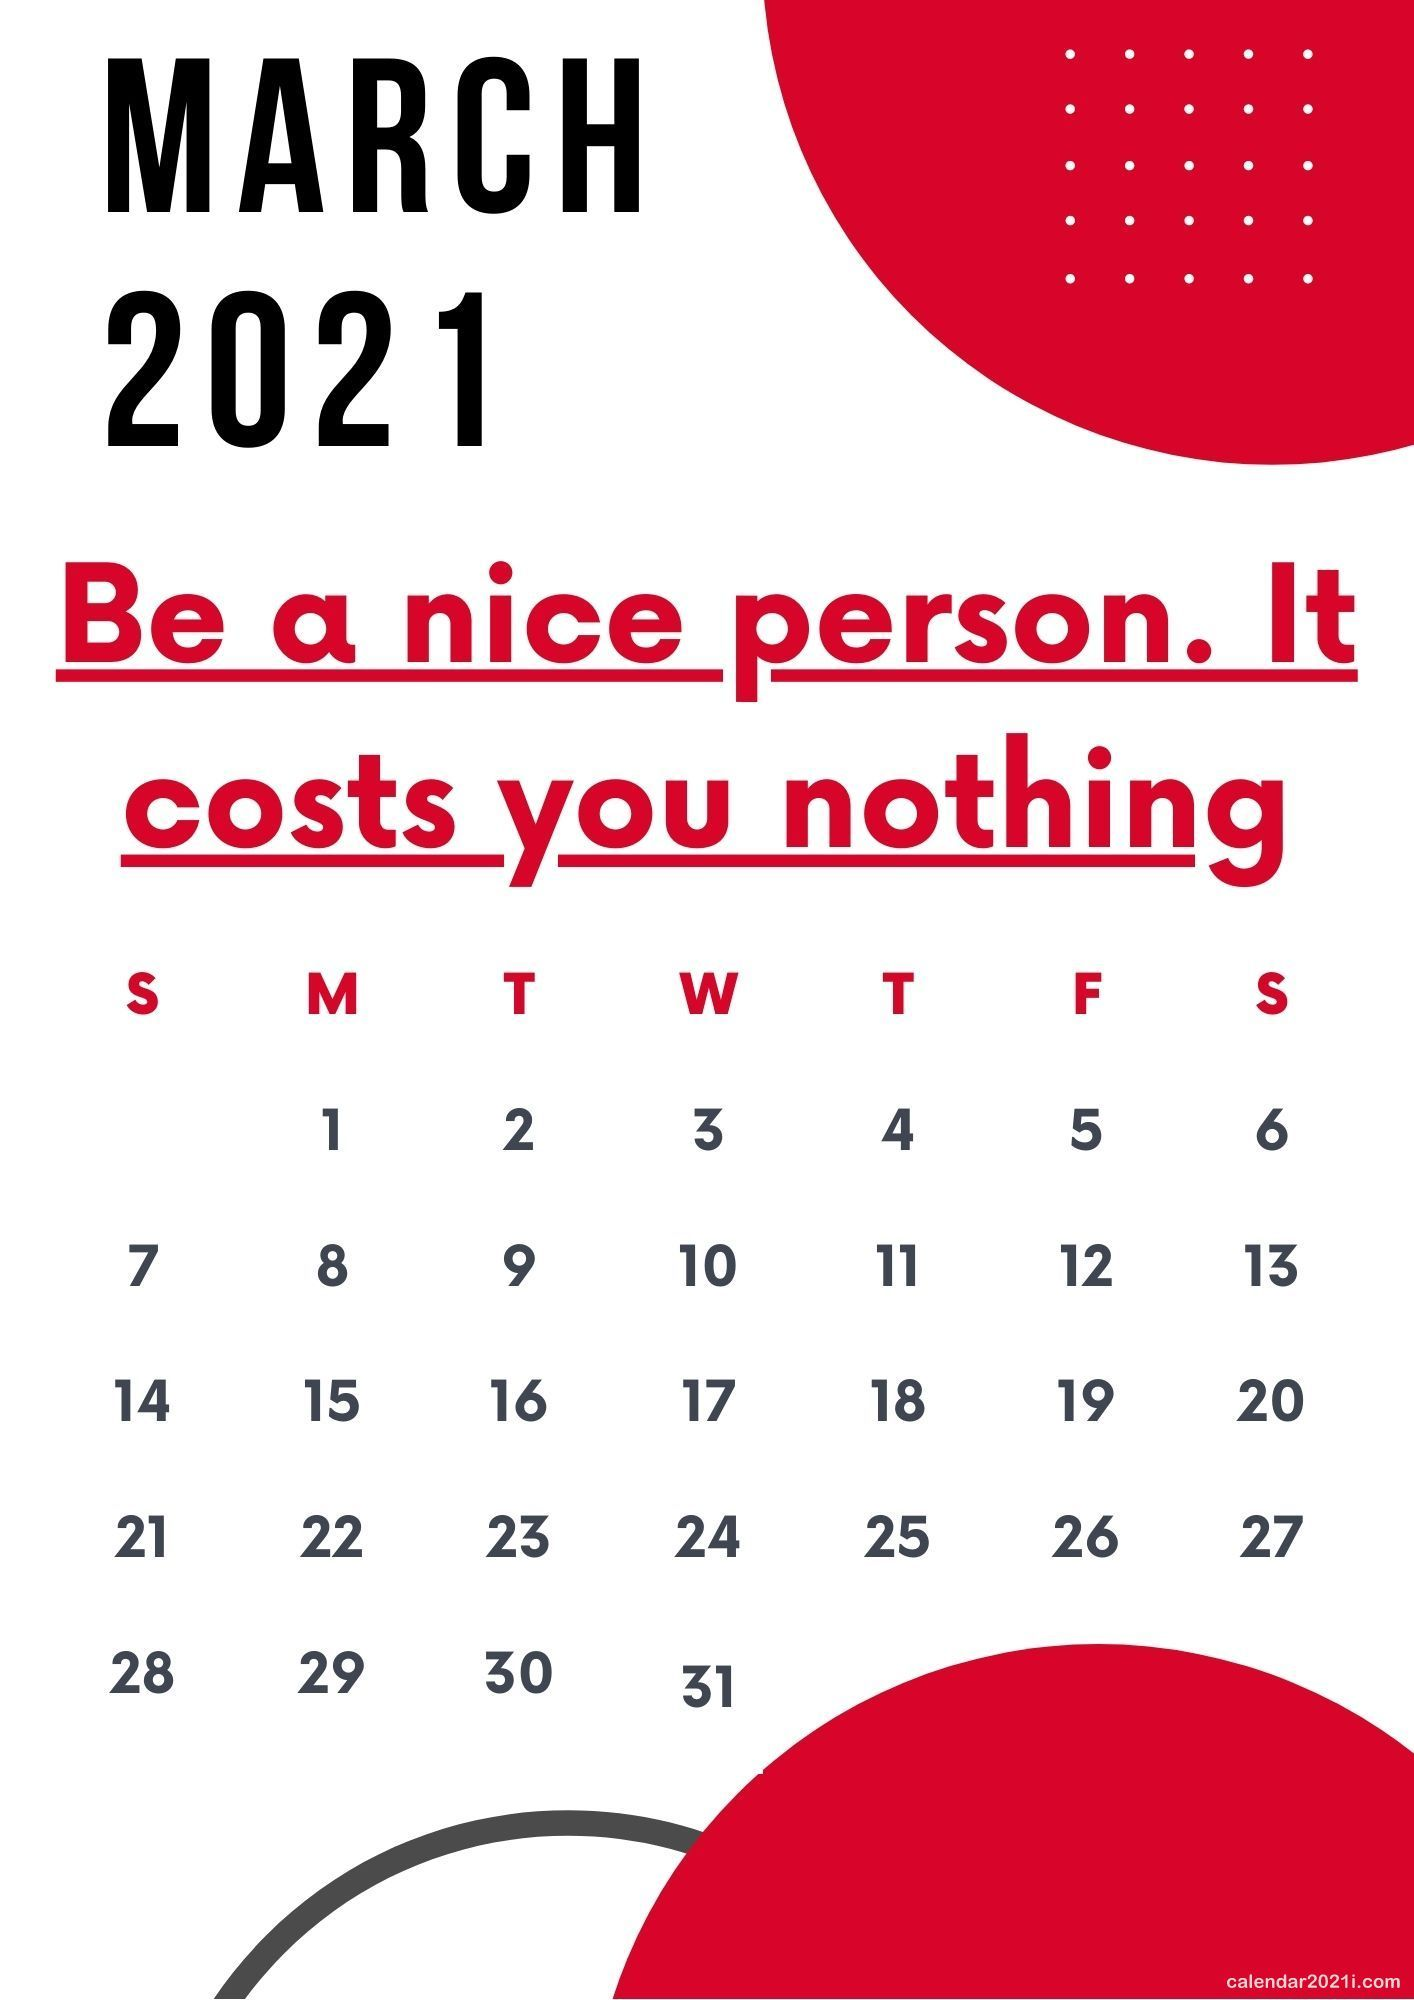 March 2021 Motivational Calendar With Quotes